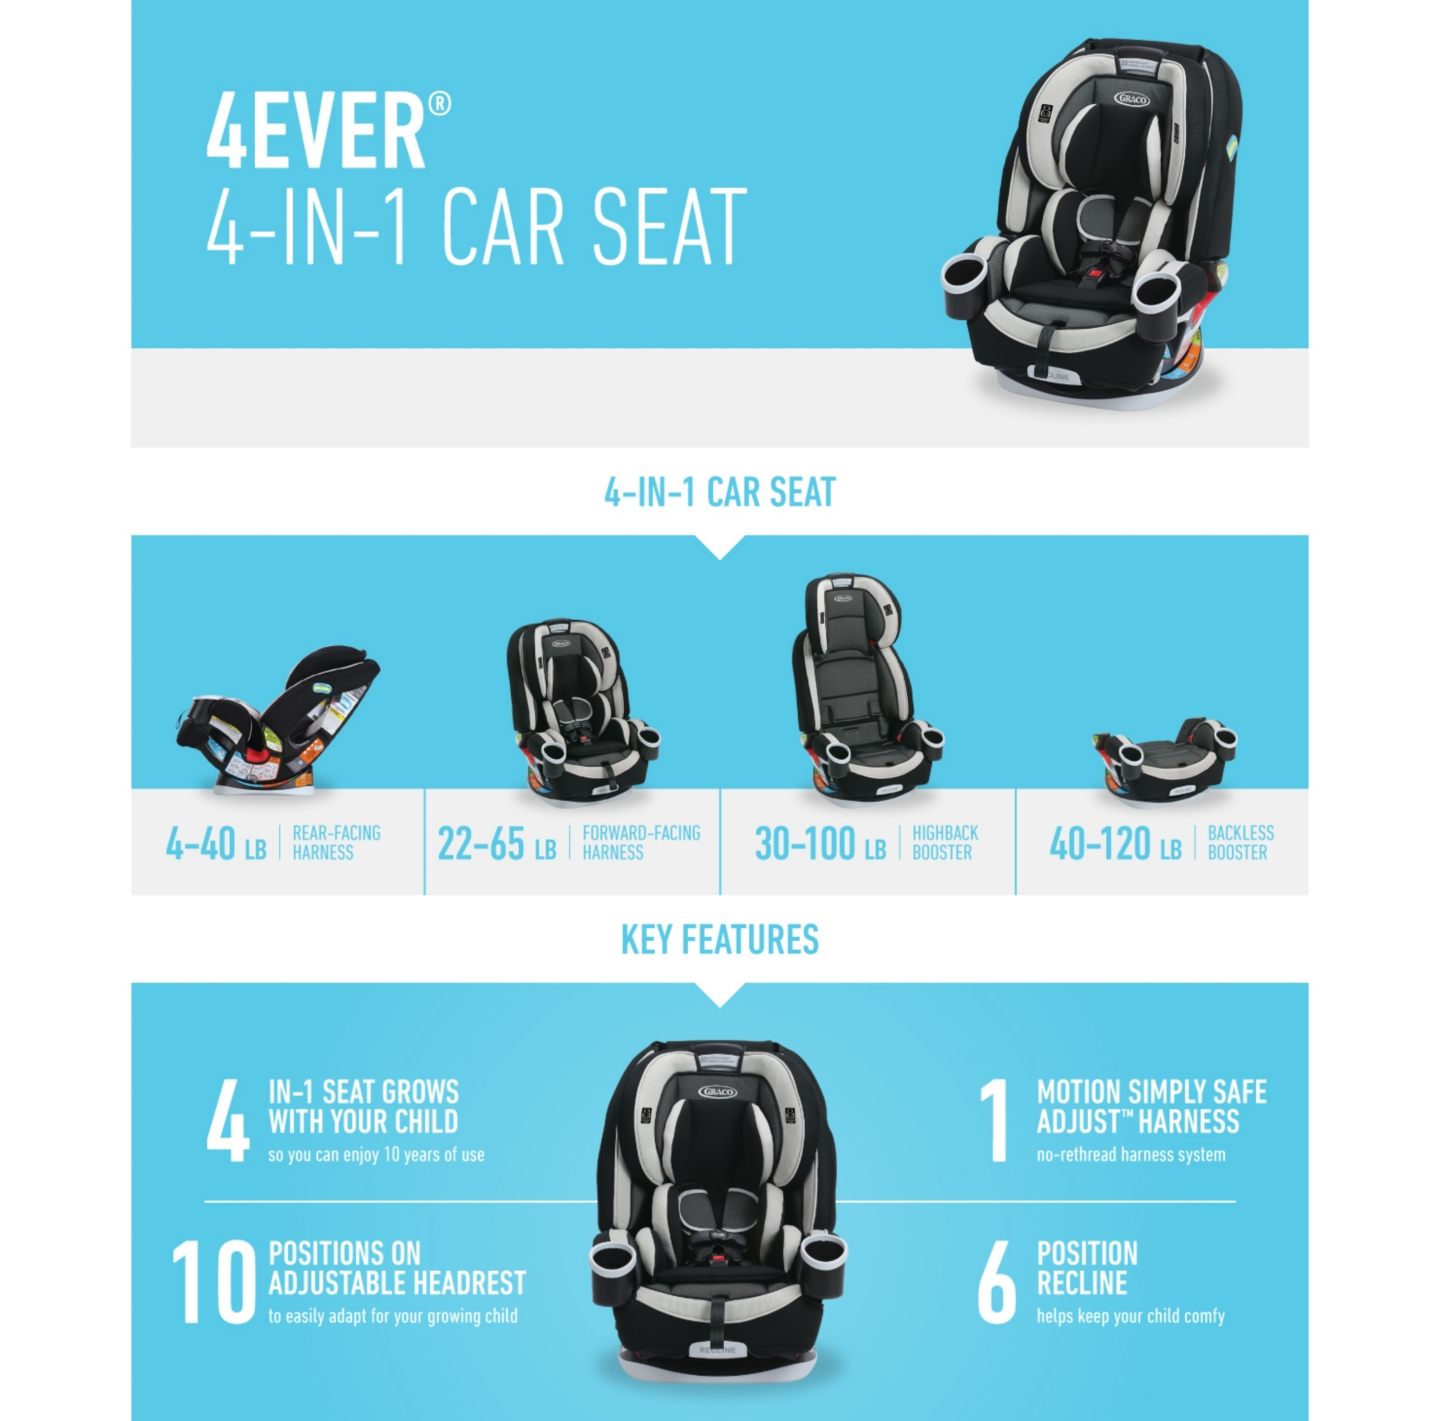 4Ever 4-in-1 CarSeat